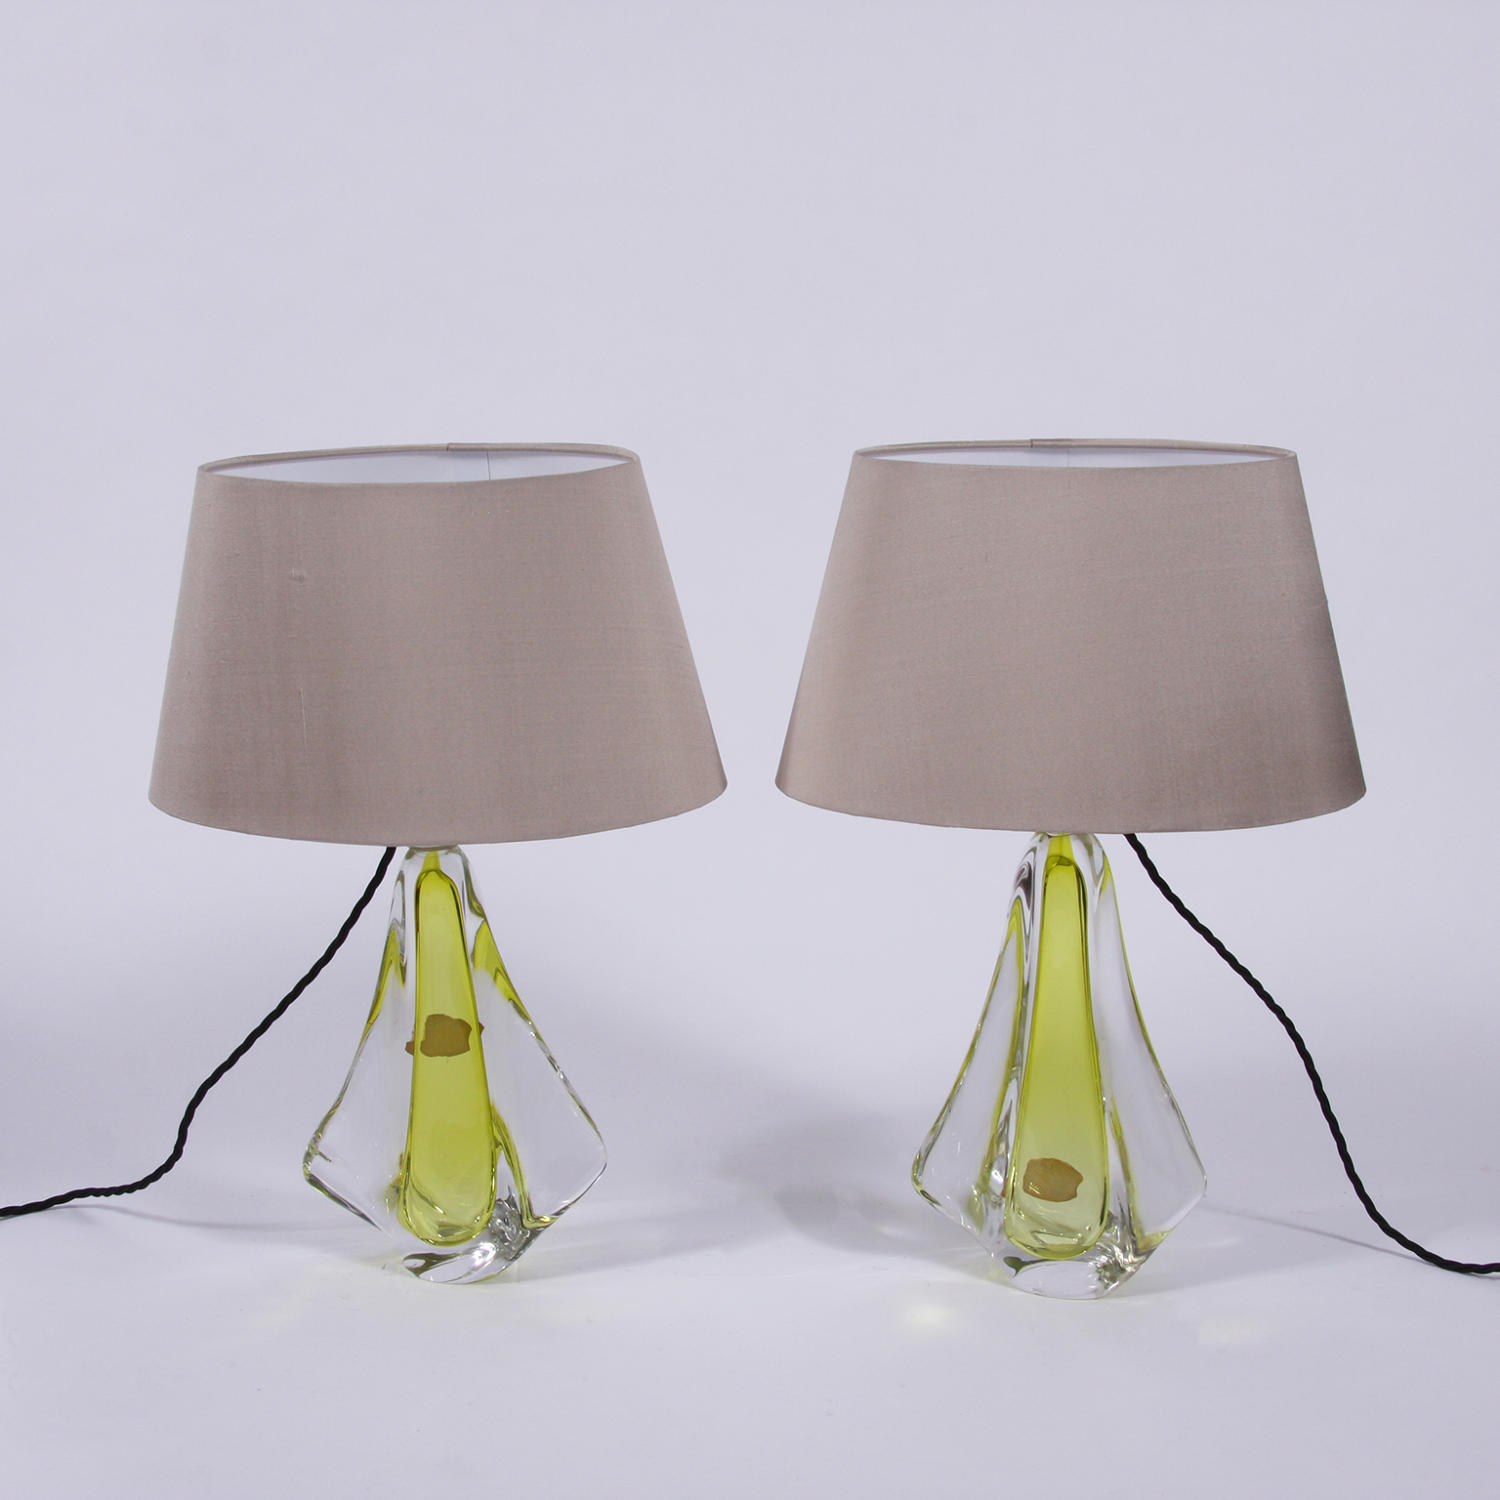 Pair of Val St Lambert Lamps